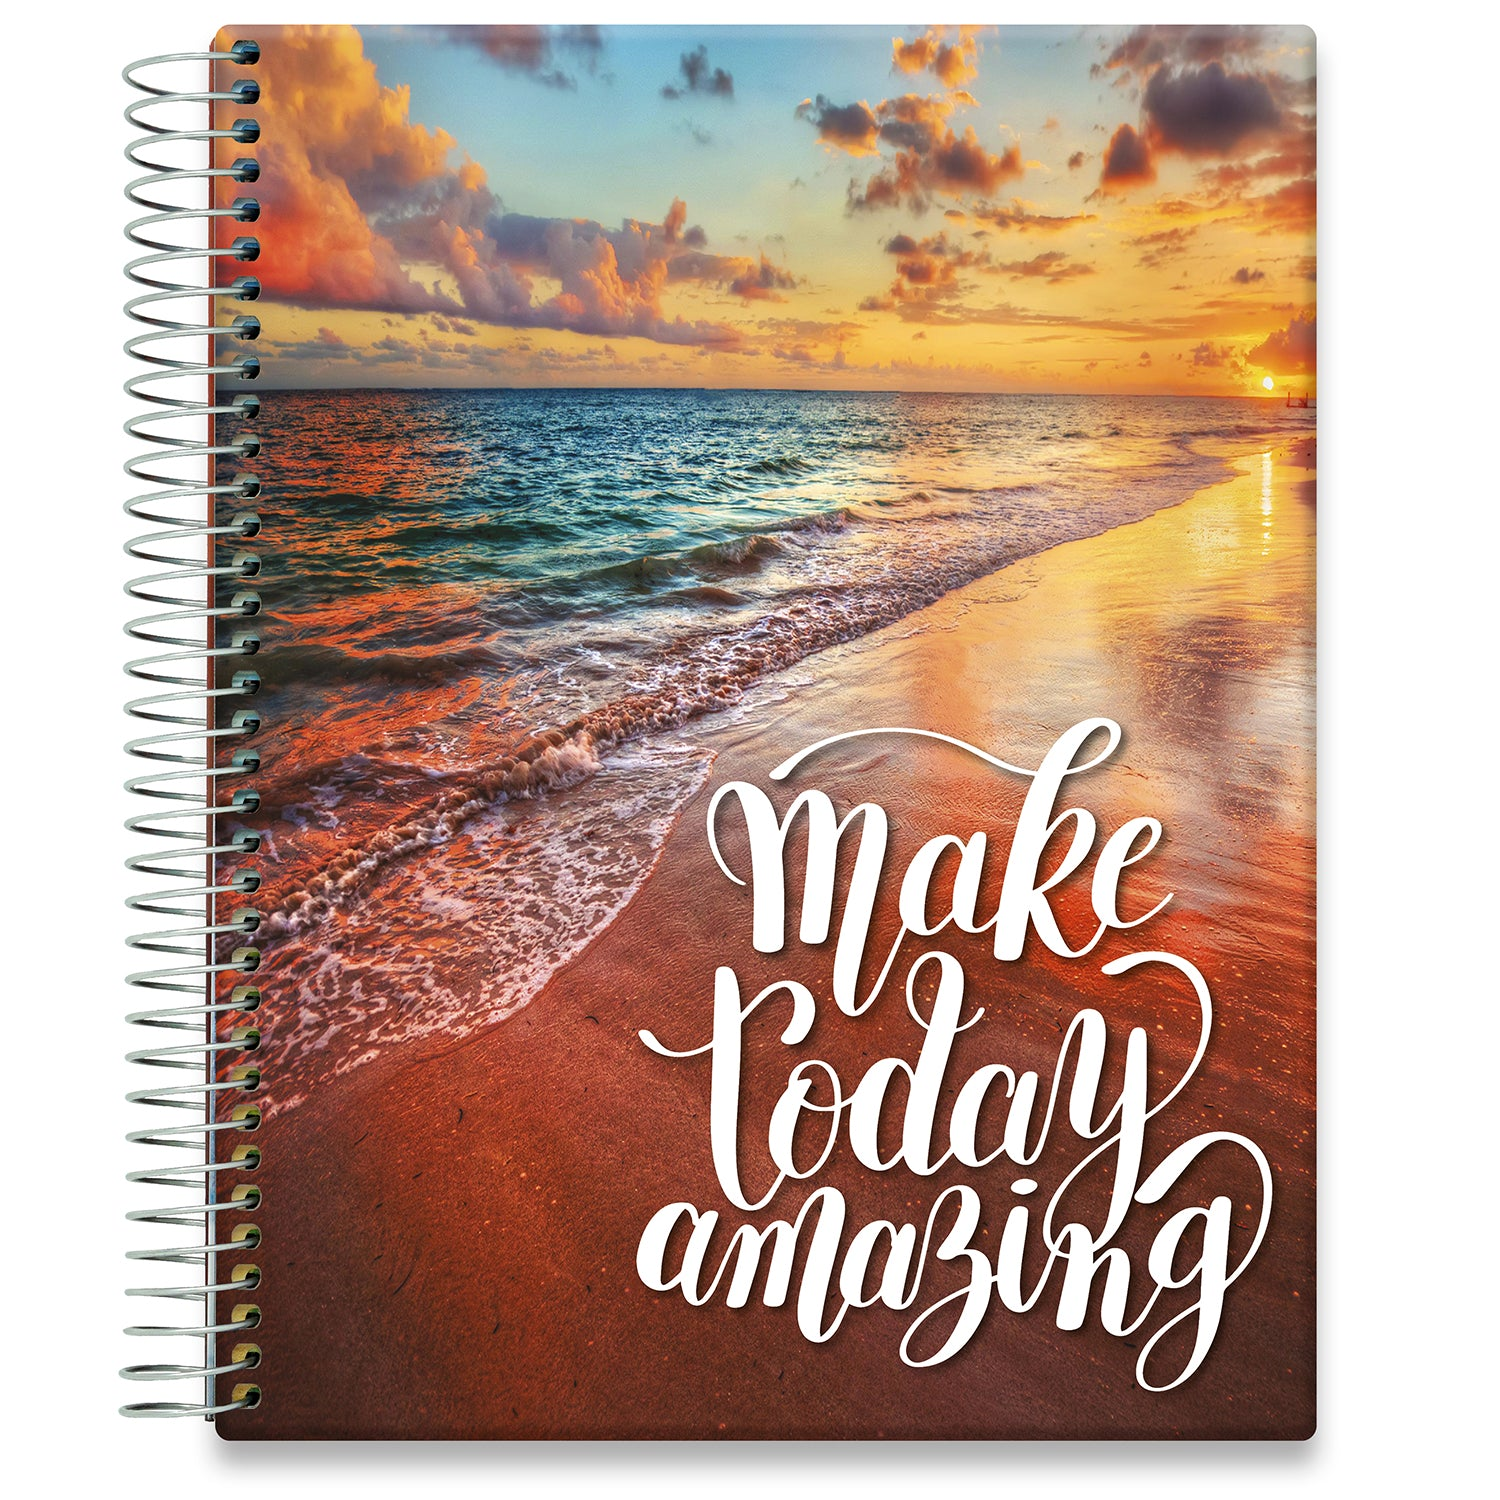 Planner 2021-2022 • April 2021 to June 2022 Academic Year • 8.5x11 Hardcover • Make Today Amazing